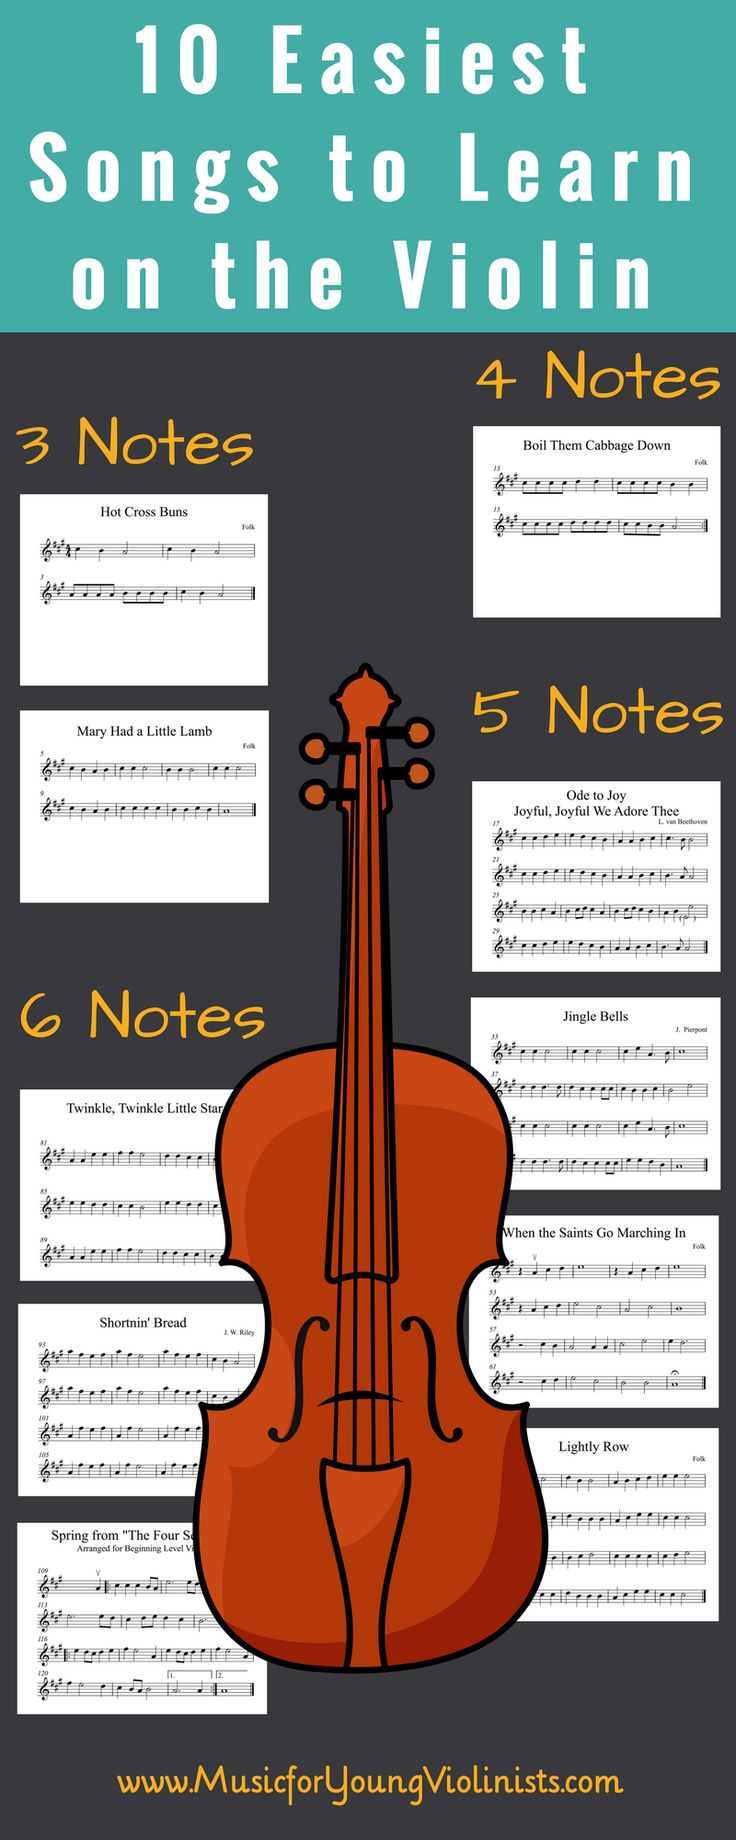 Violin Lessons - Learn How To Play The Violin The Easy Way